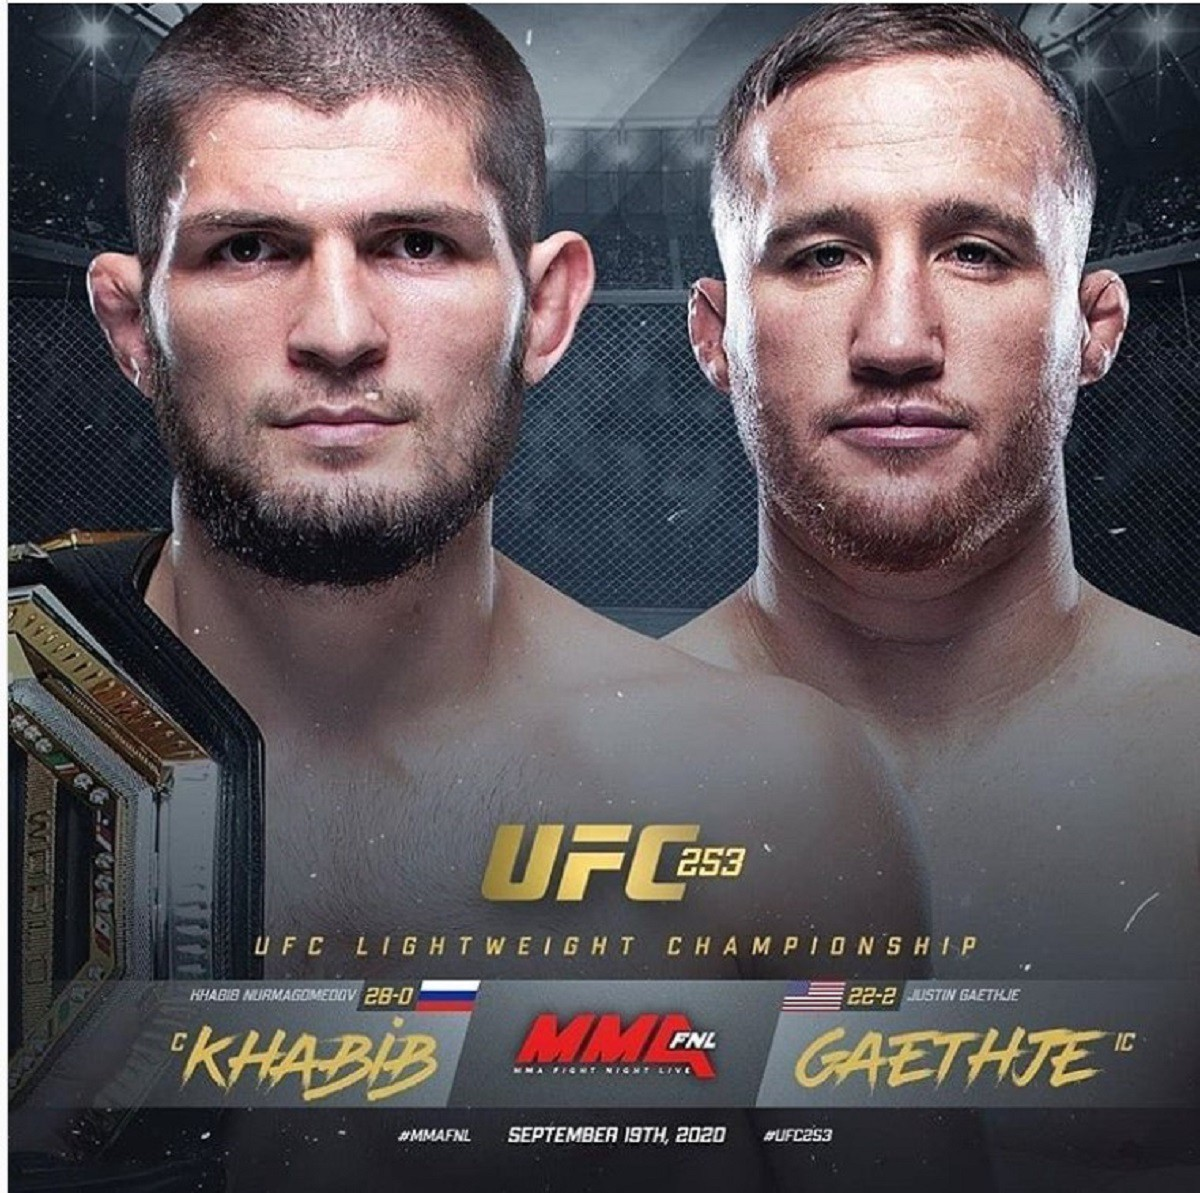 How To Watching Ufc 253 Live Stream Reddit Match Without Hasslefree On Online By Ufc 253 Live Stream Jul 2020 Medium